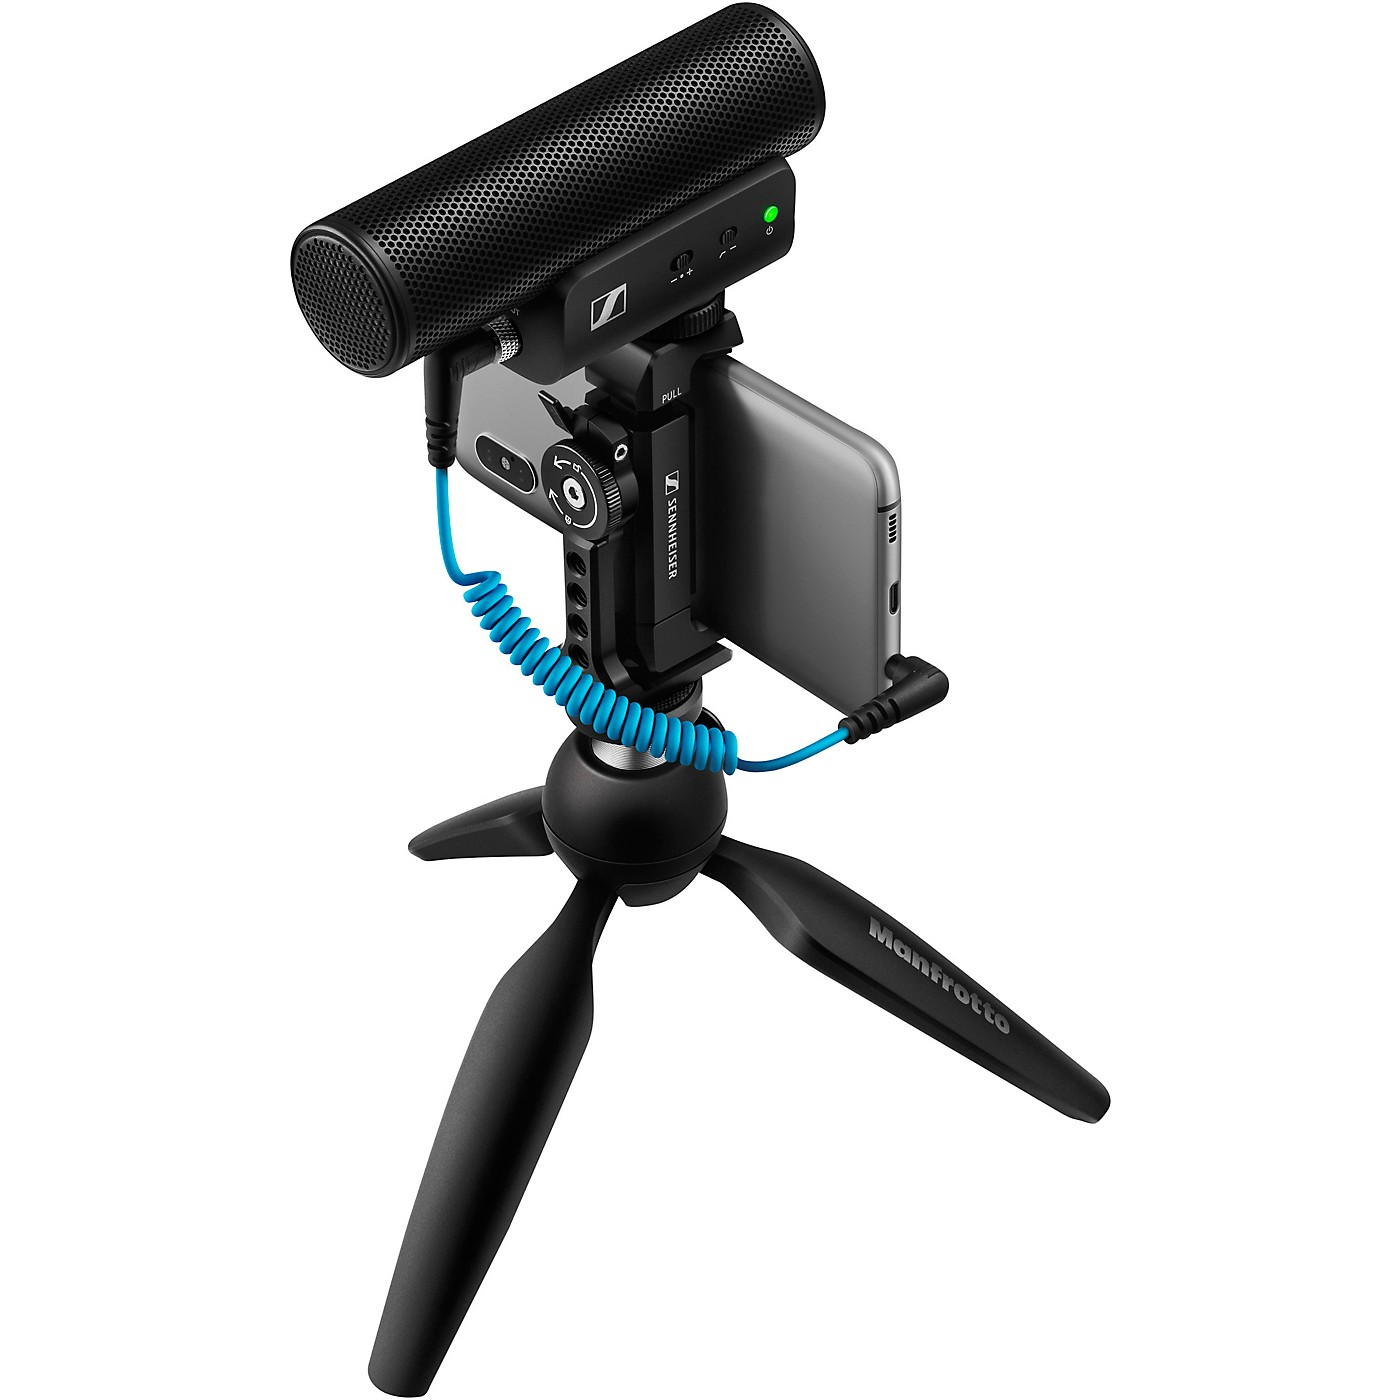 Sennheiser MKE 400 MOBILE KIT - Includes MKE 400 Shotgun Microphone, Manfrotto PIXI Mini Tripod and Sennheiser Smartphone Clamp thumbnail